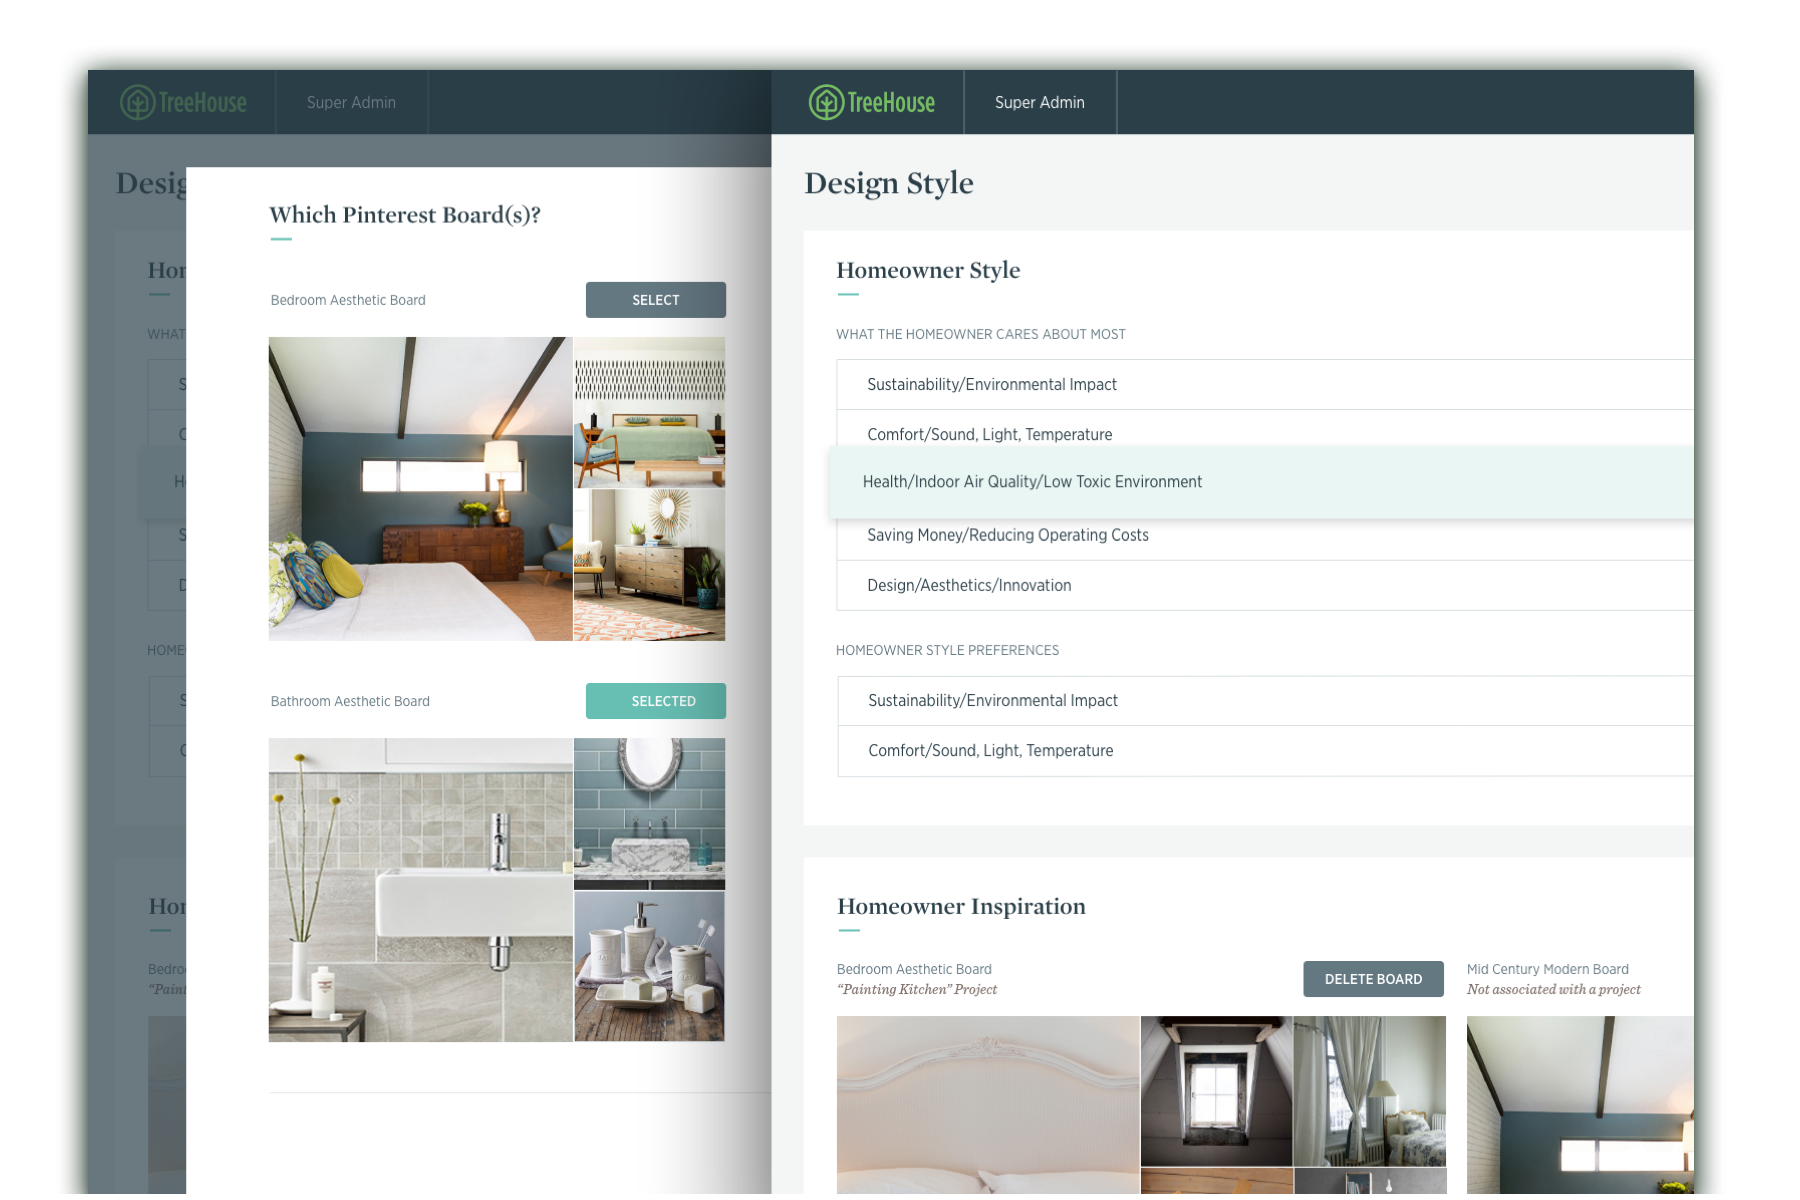 two overlapping interface screenshots of a Treehouse branded desktop and tablet interface.